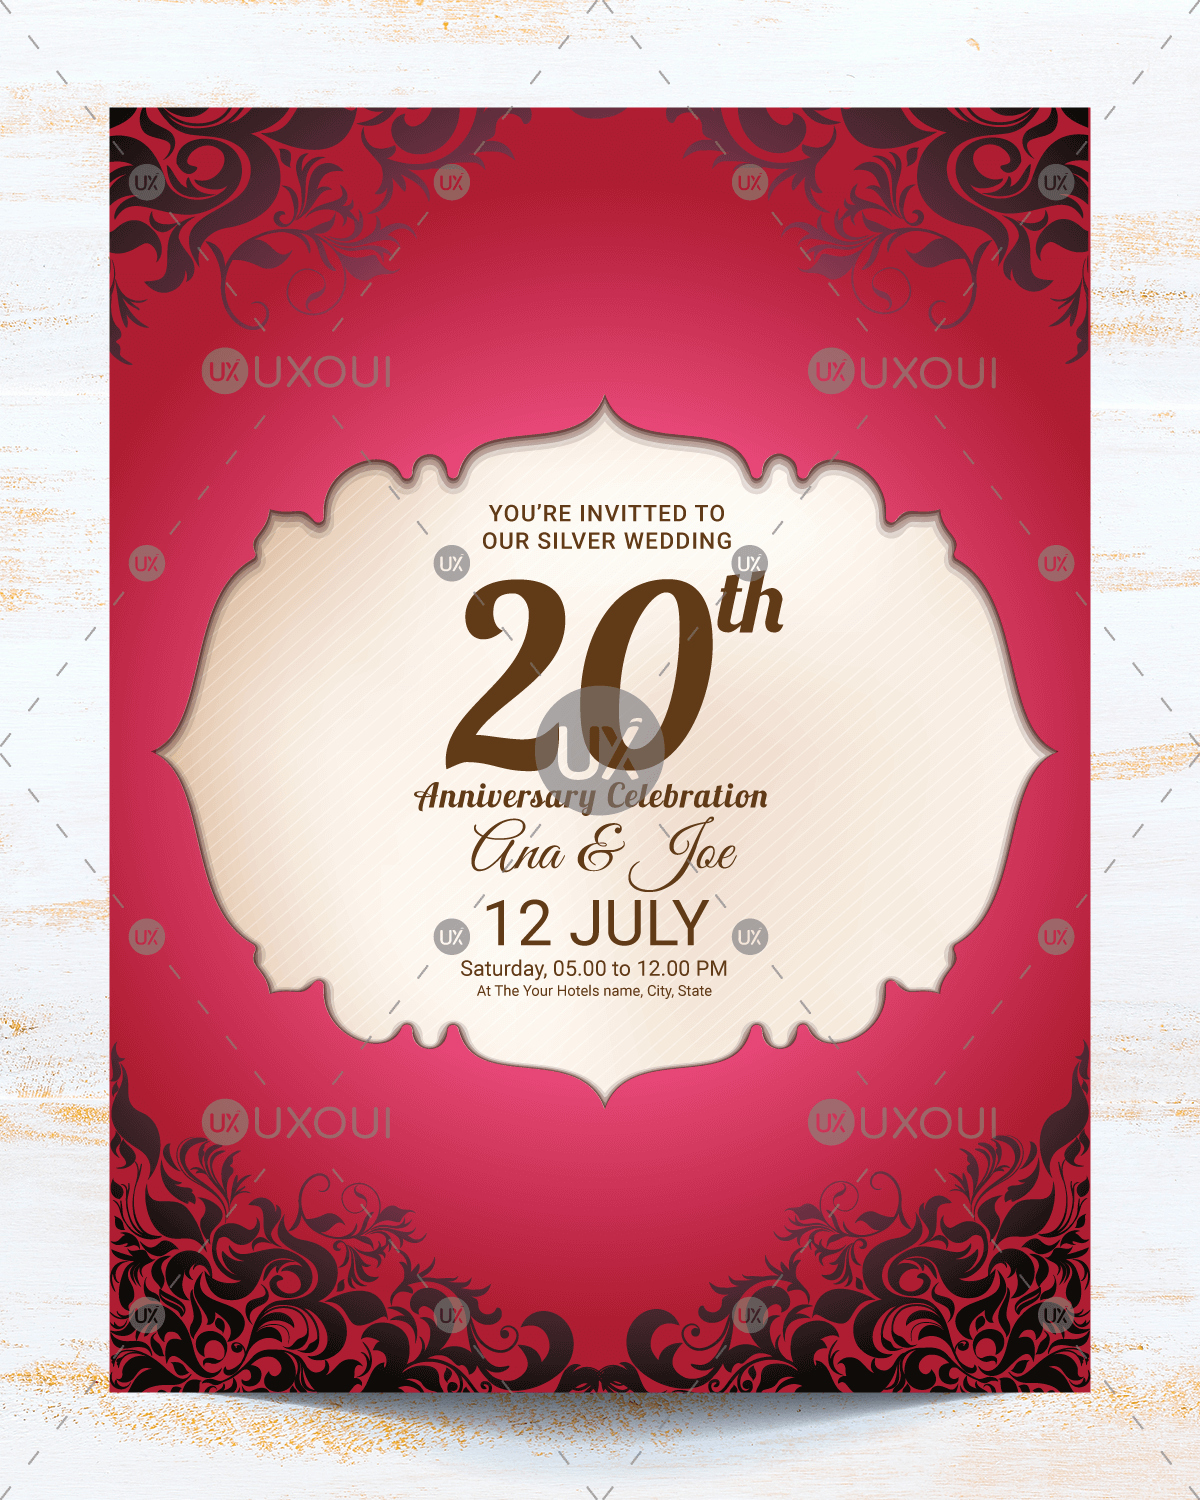 Wedding Invitation Design Templates Fresh Vintage Wedding Anniversary Invitation Card Template